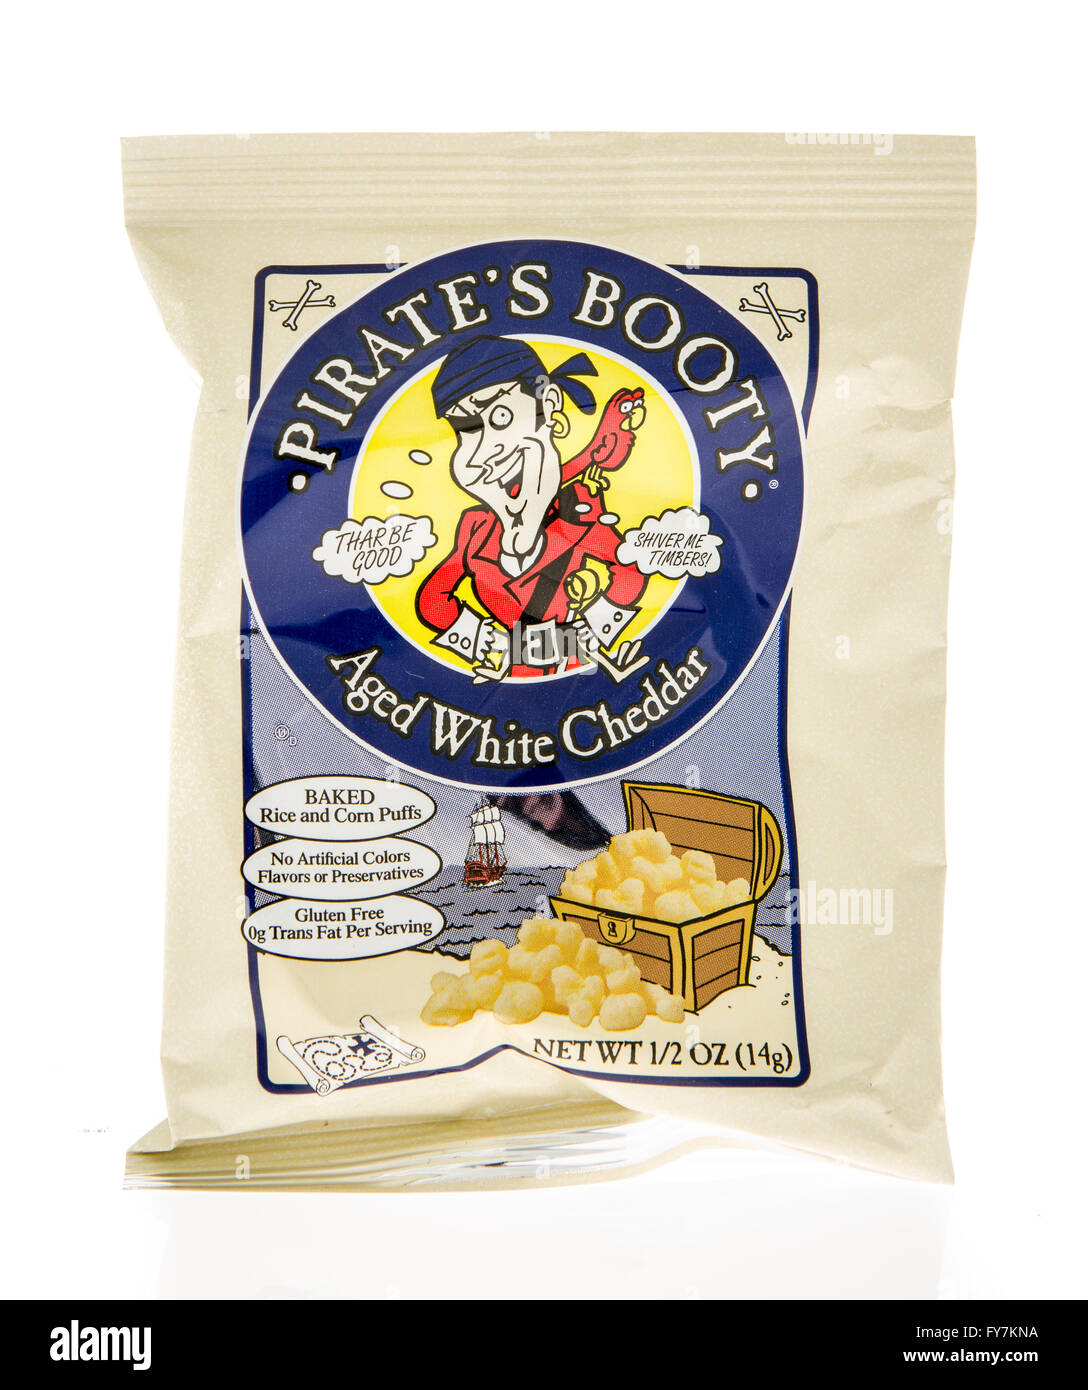 Winneconne, WI - 5 March 2016:  A bag of Pirate's Booty aged white cheddar rice and corn puffs - Stock Image